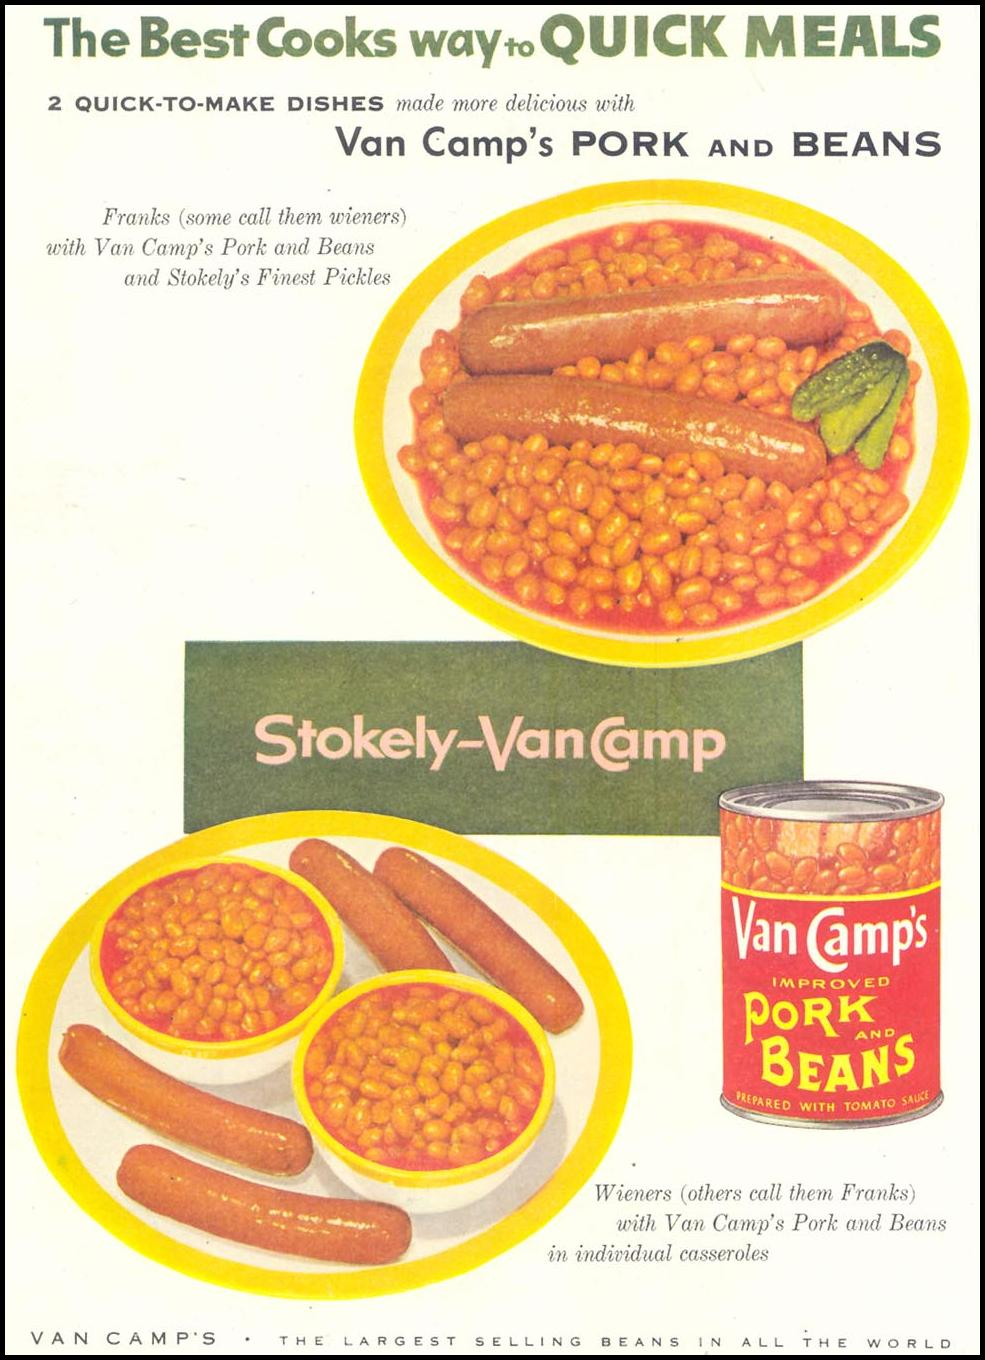 VAN CAMP'S PORK AND BEANS SATURDAY EVENING POST 02/05/1955 p. 80